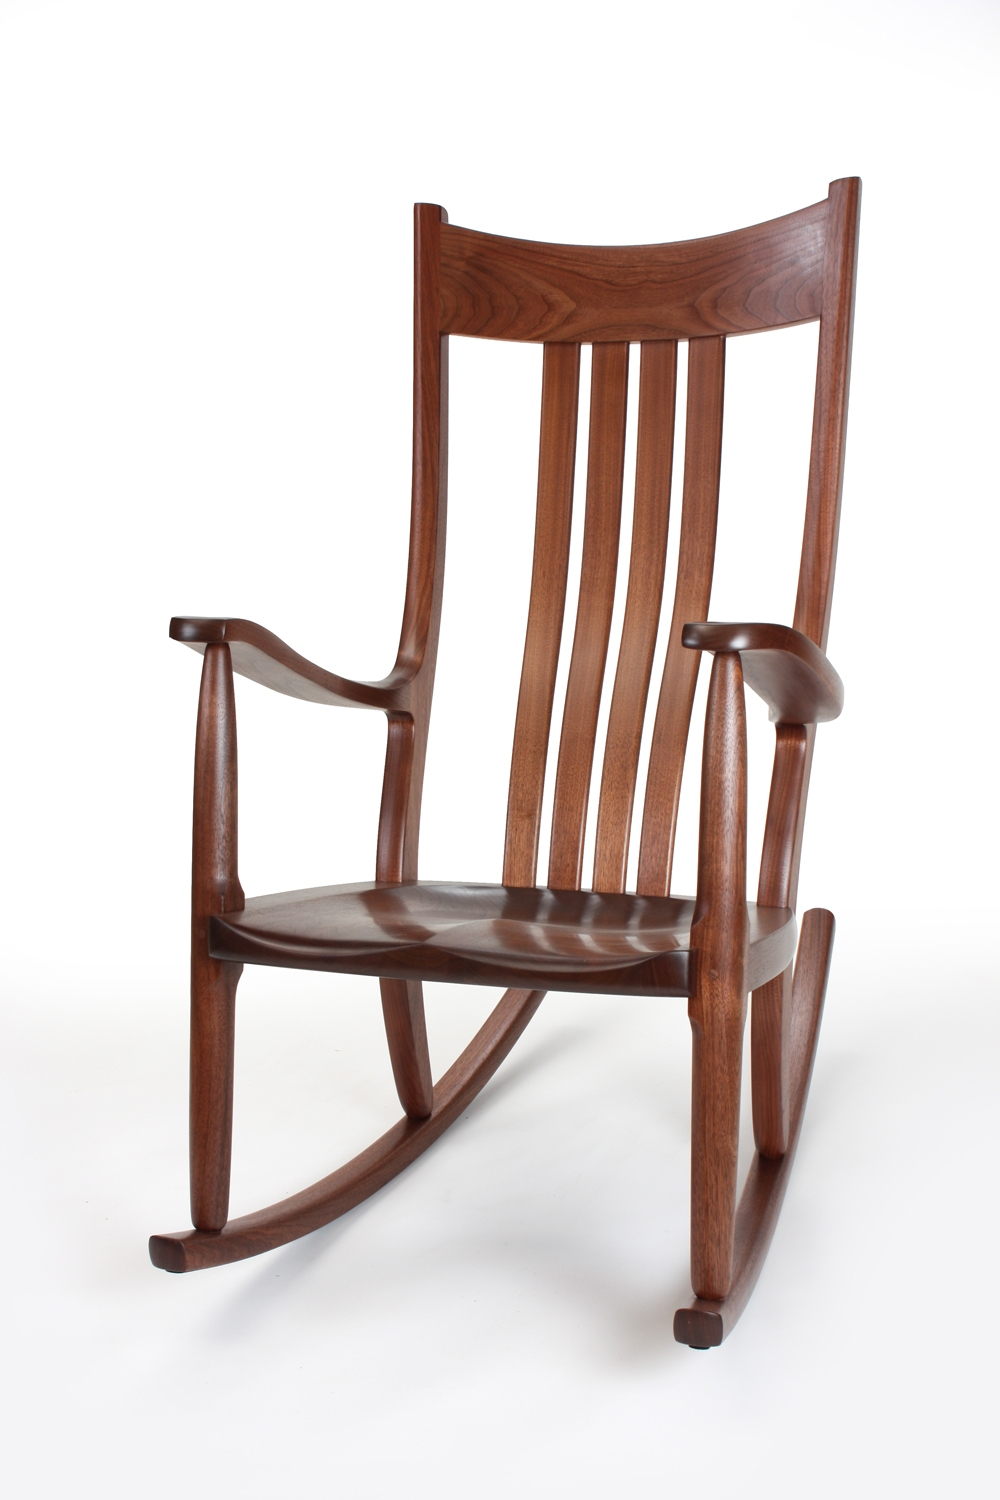 Walnut Rocking Chairs | Comfortable, Handmade, Heirloom Within Dark Walnut Rocking Chairs (View 4 of 20)